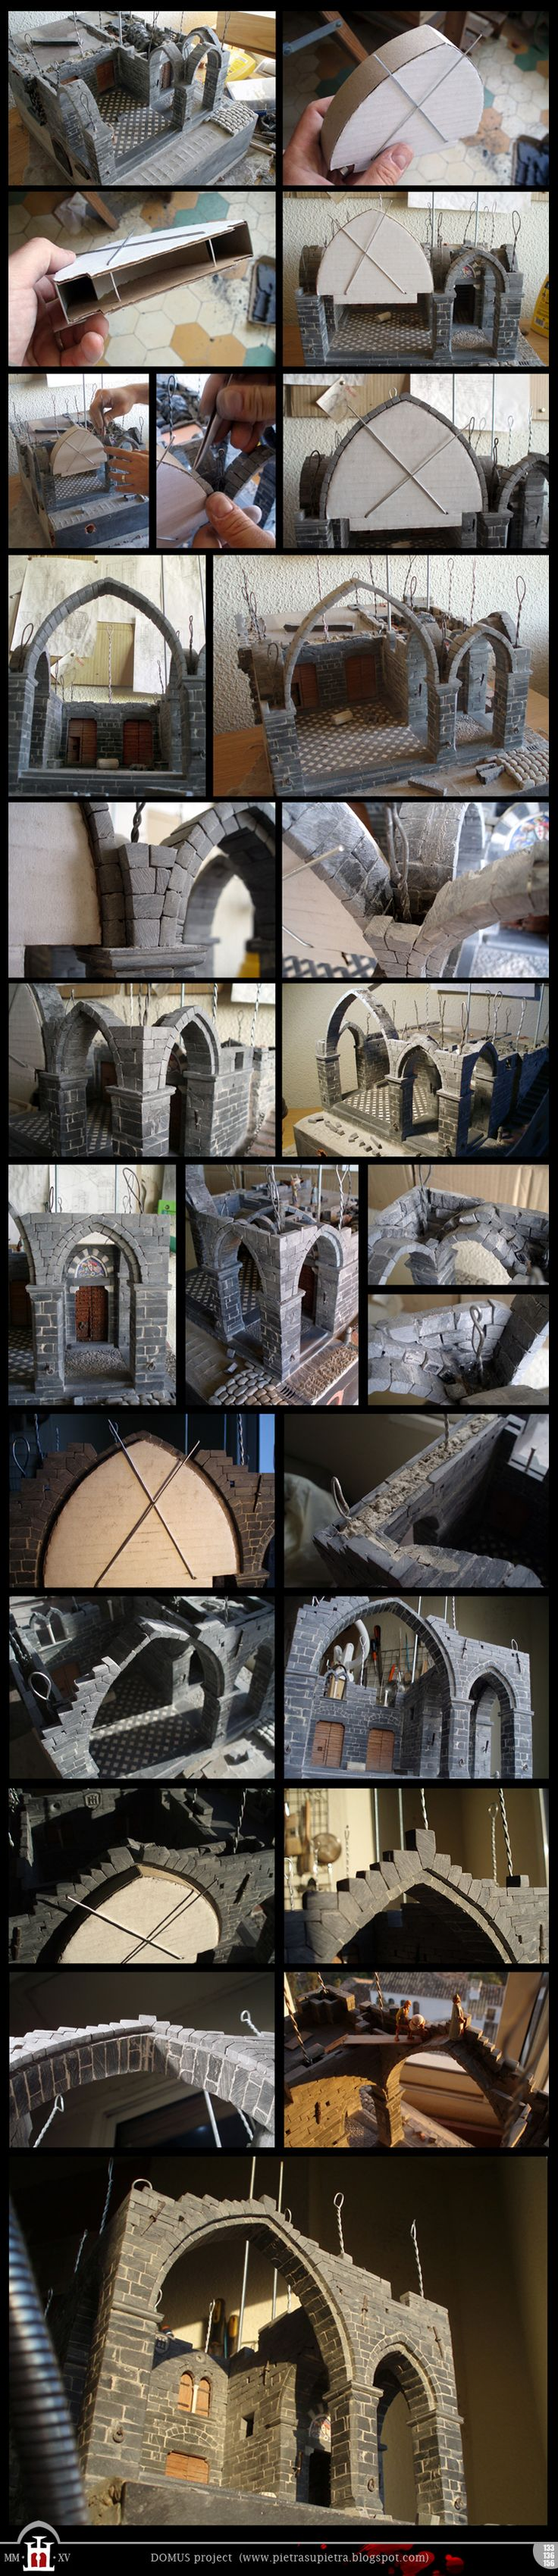 Domus project 133-136-156: Main arch